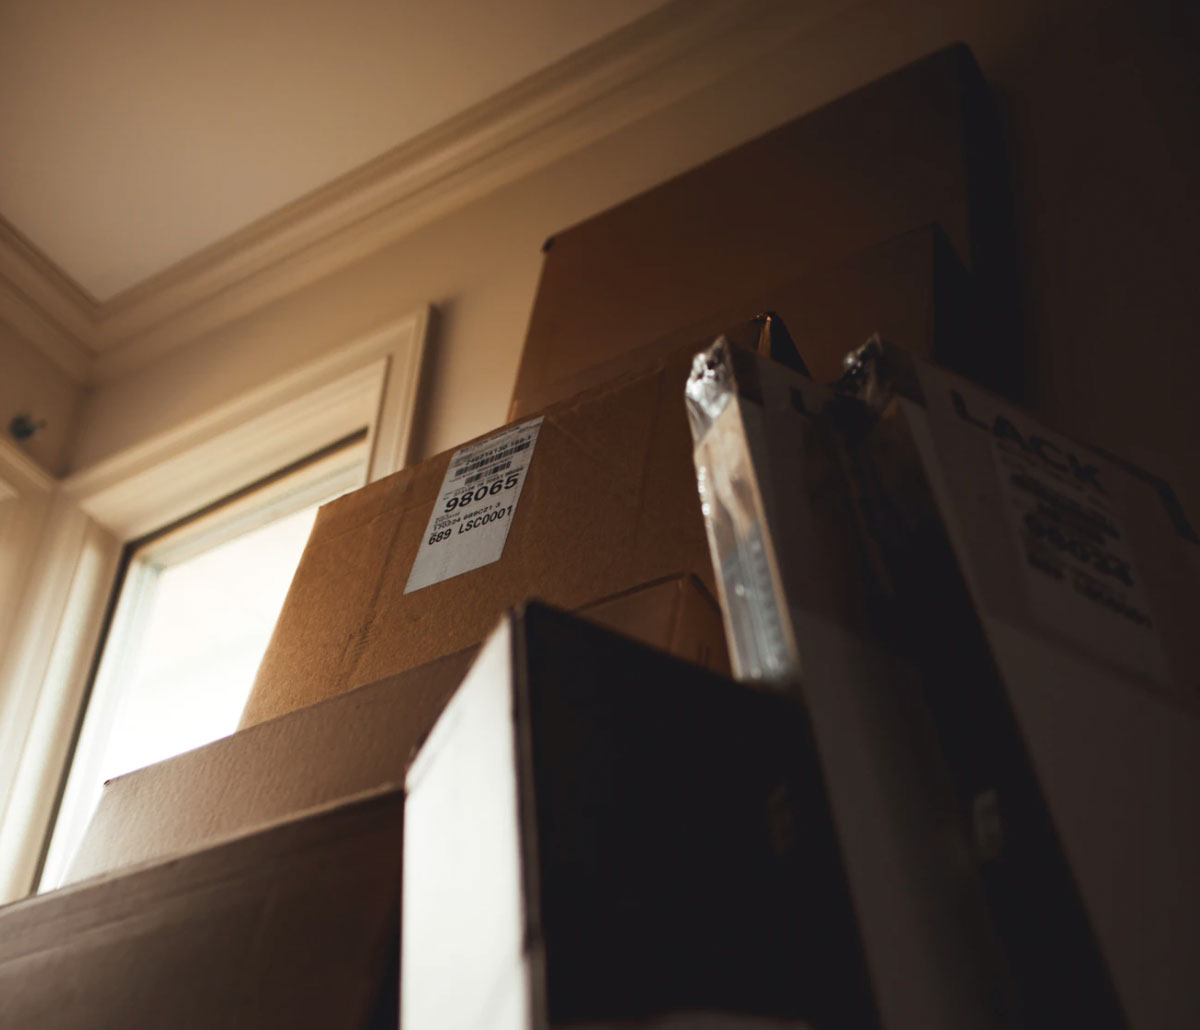 Are you considering utilizing residential moving services for your upcoming move in Alaska? Keep these great benefits in mind as you decide what's best for you.